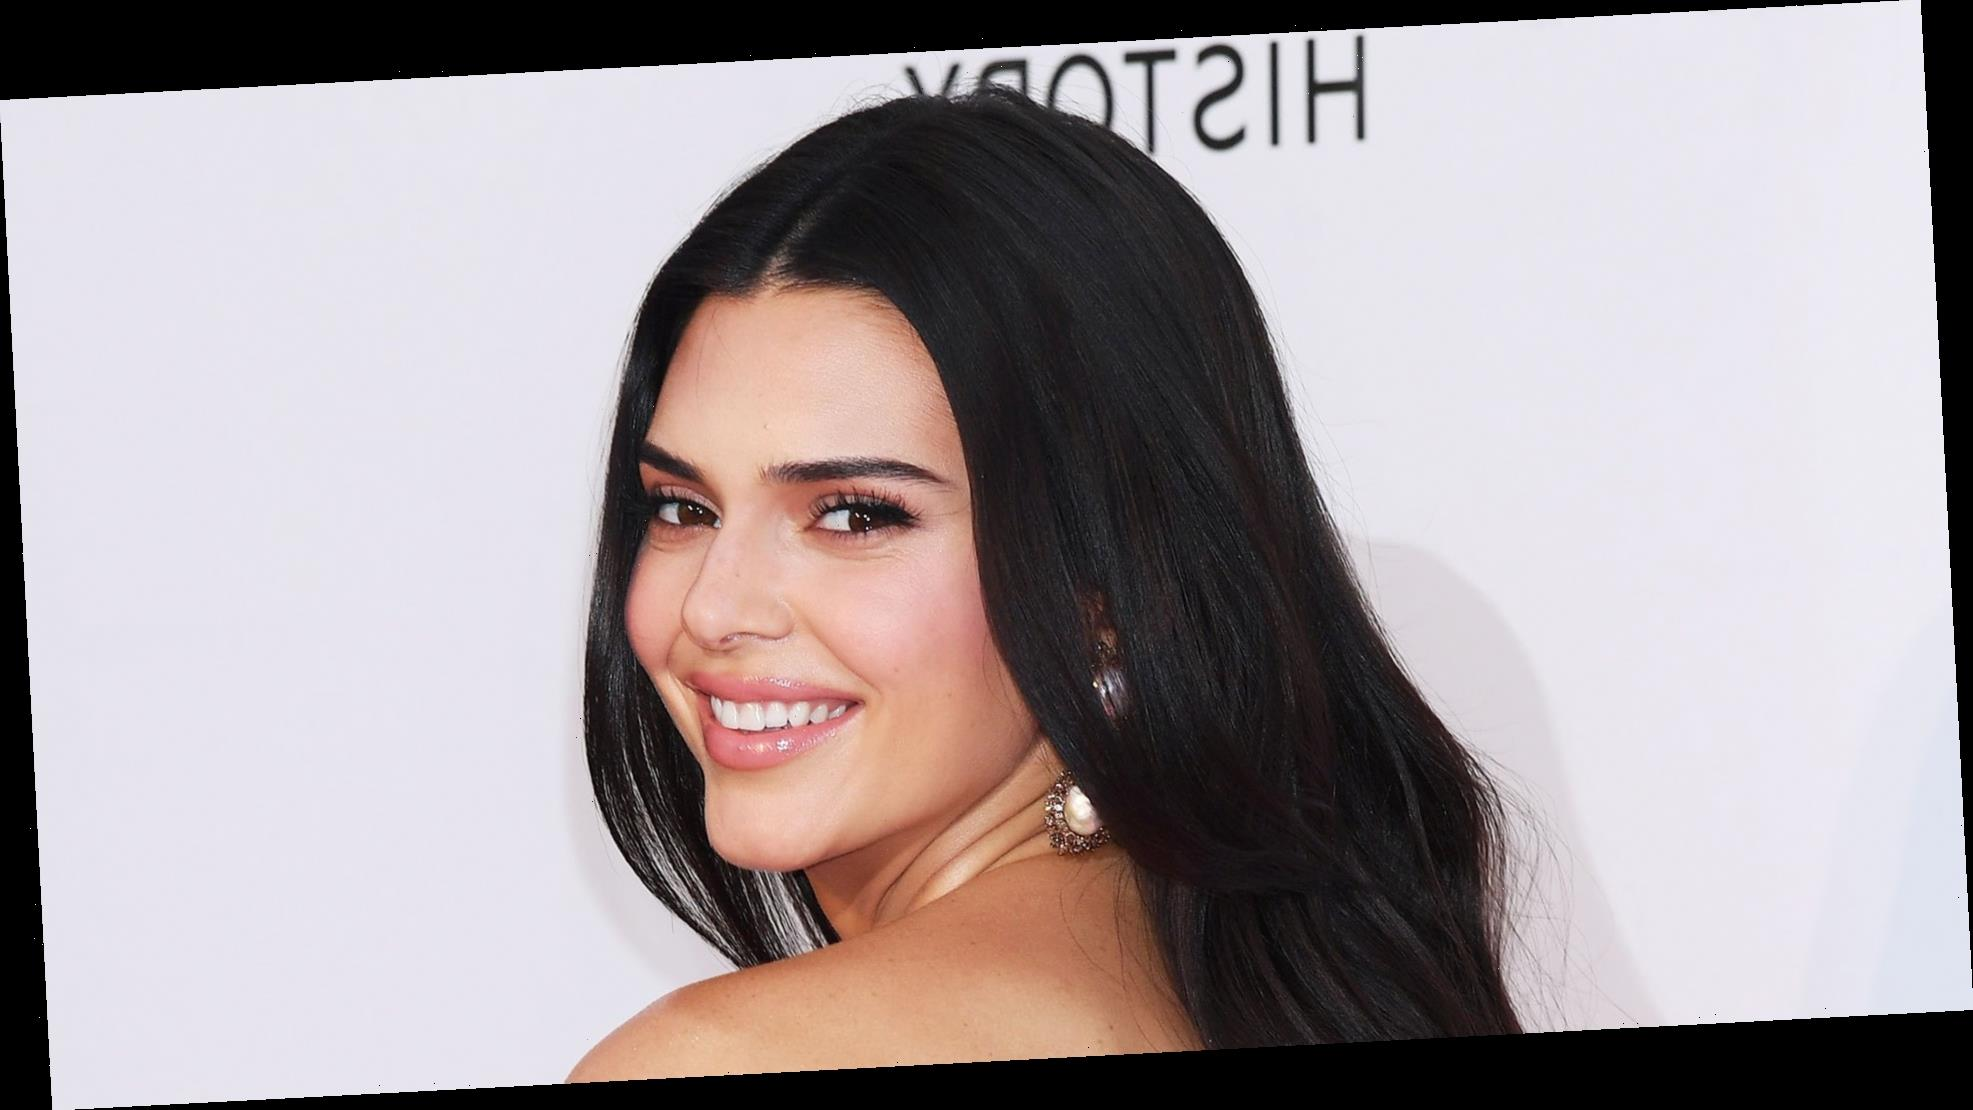 Kendall Jenner Says She Was Asked to Show Her Breasts for First Show